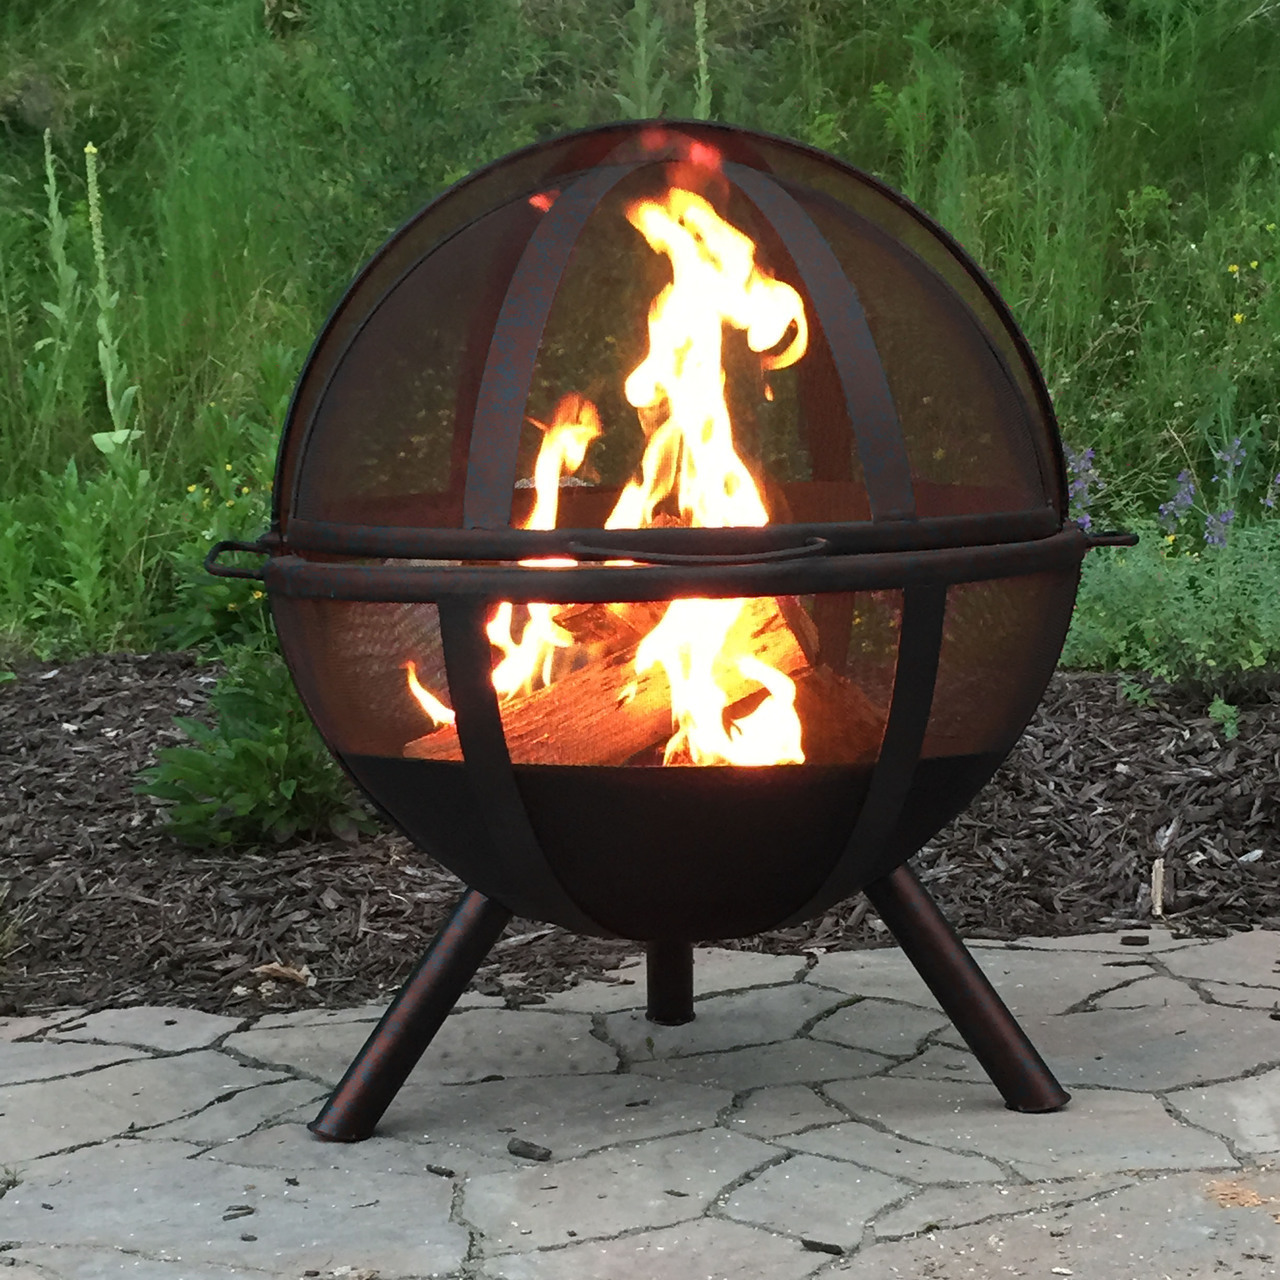 Flaming Ball Fire Pit Durable Steel Portable Wood